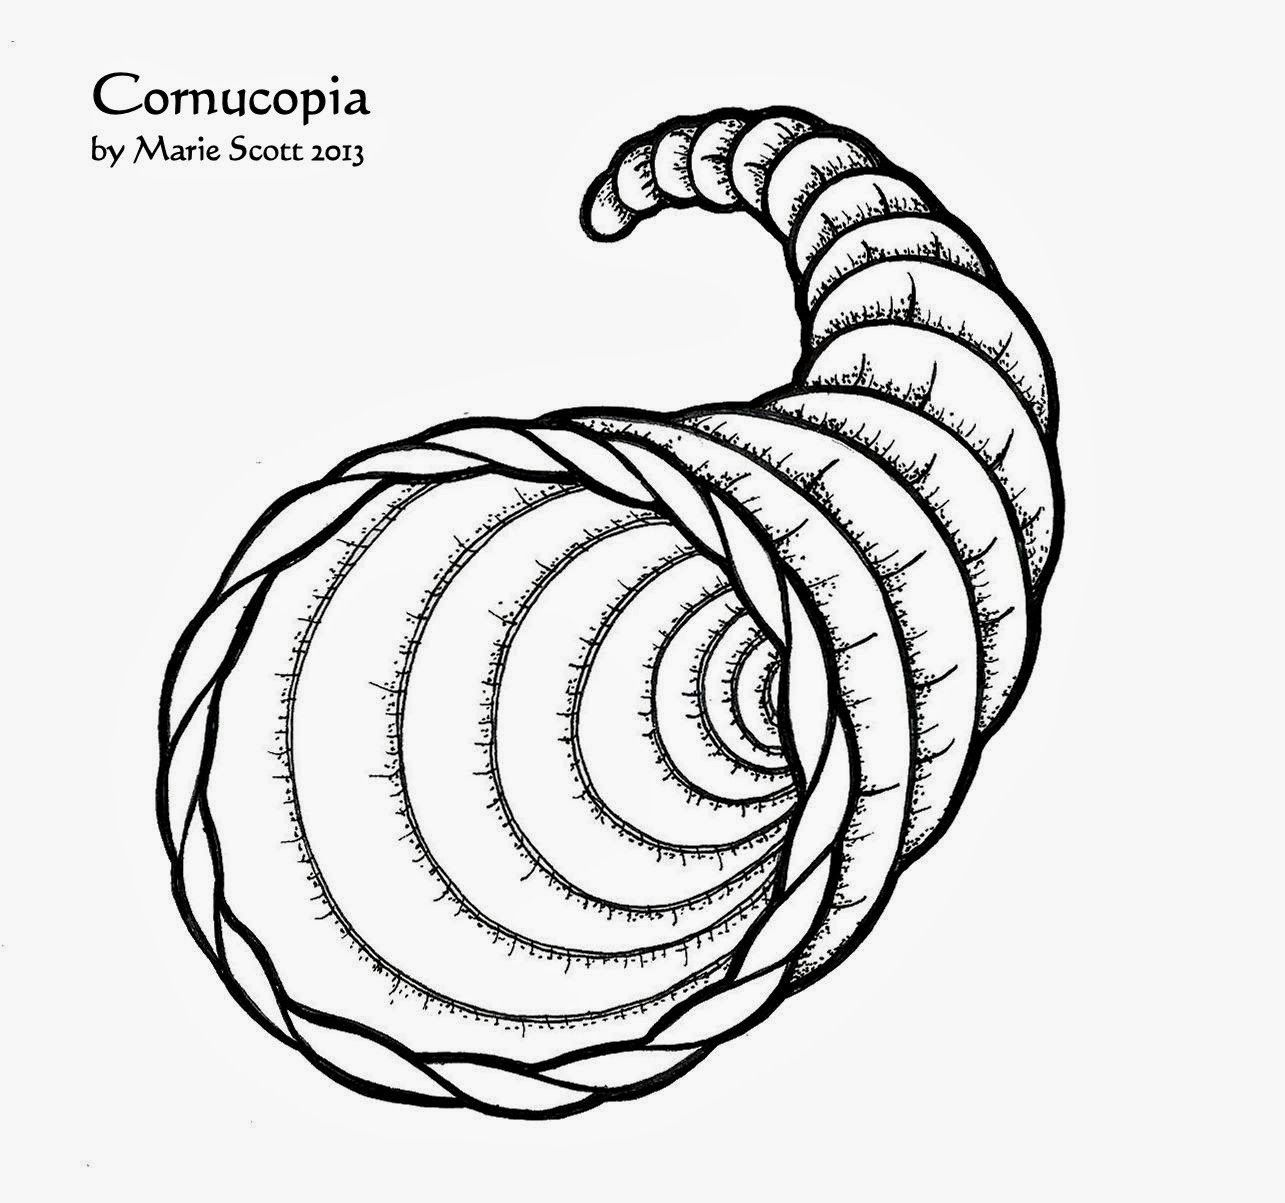 Coloring Pages Cornucopia Printable Coloring Pages cornucopia coloring page az pages empty template sheet twig